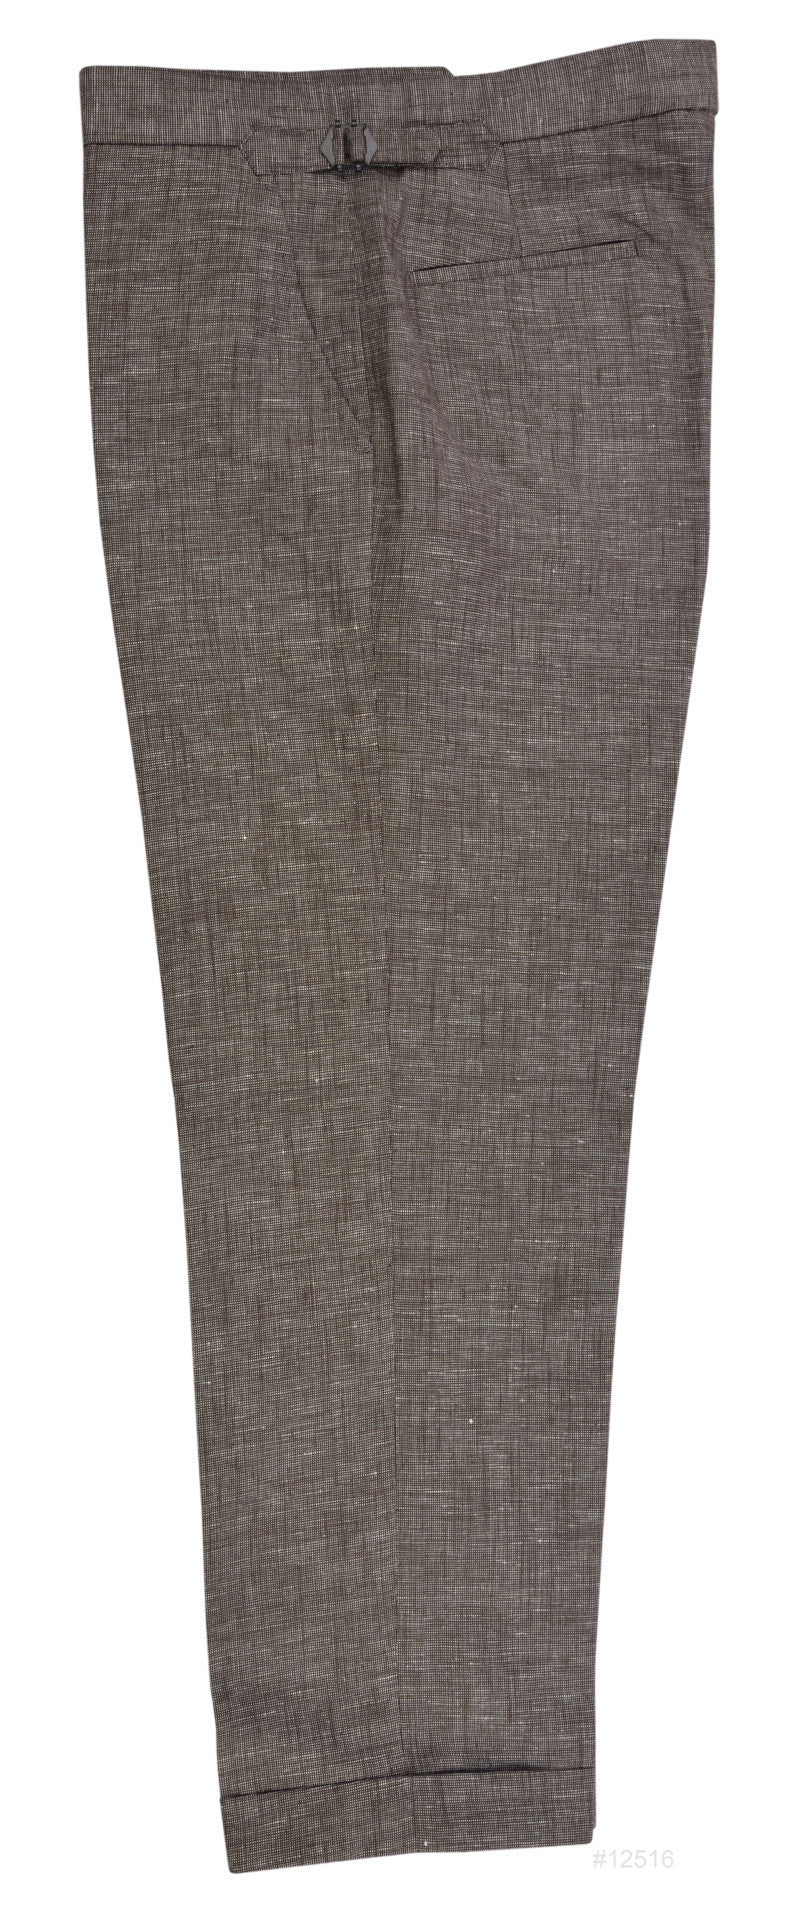 Brown Cotton Linen